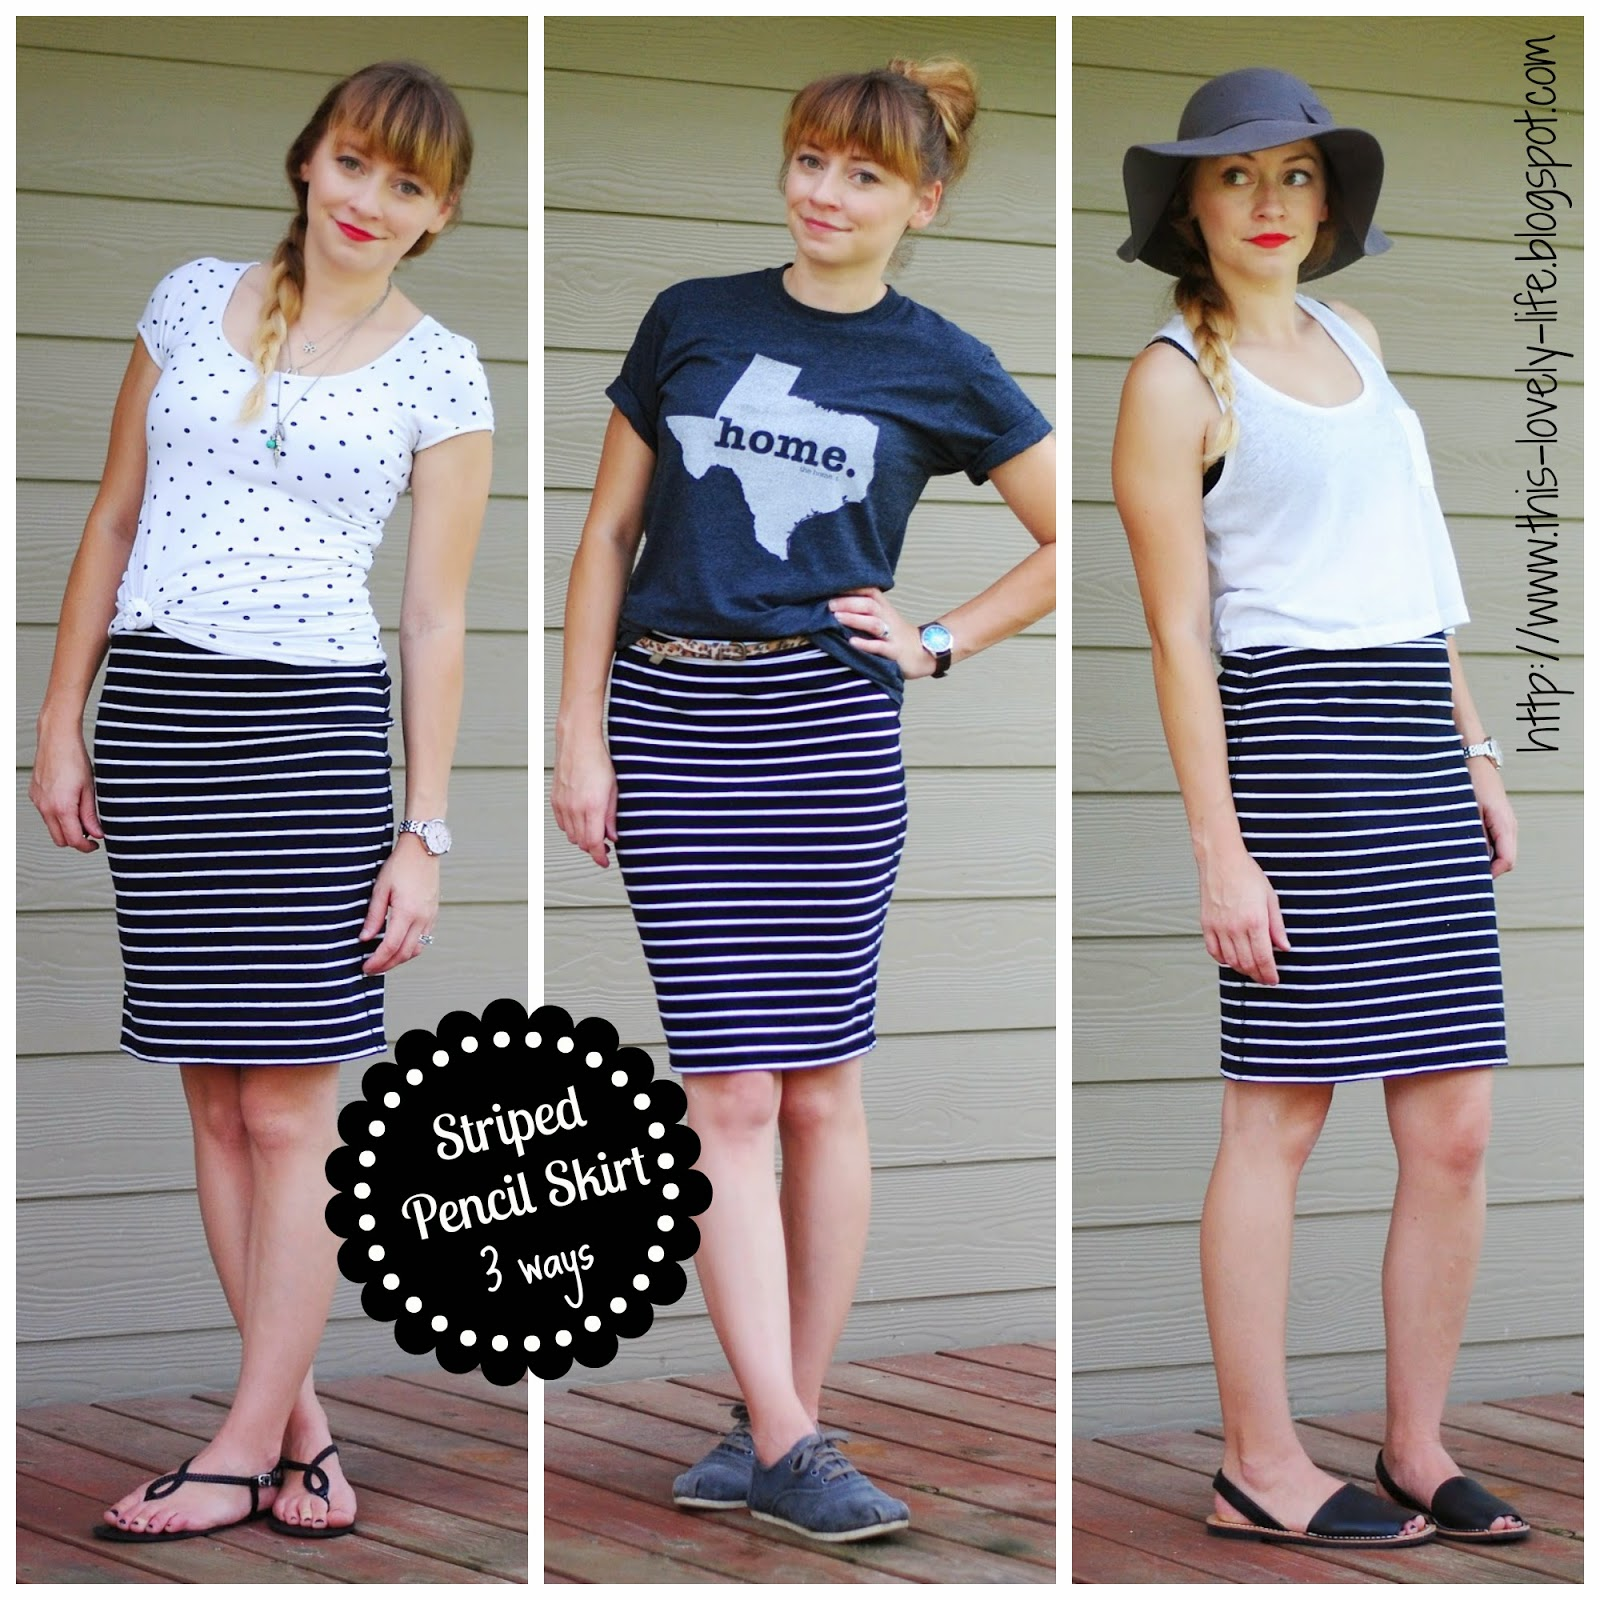 Striped pencil skirt styling